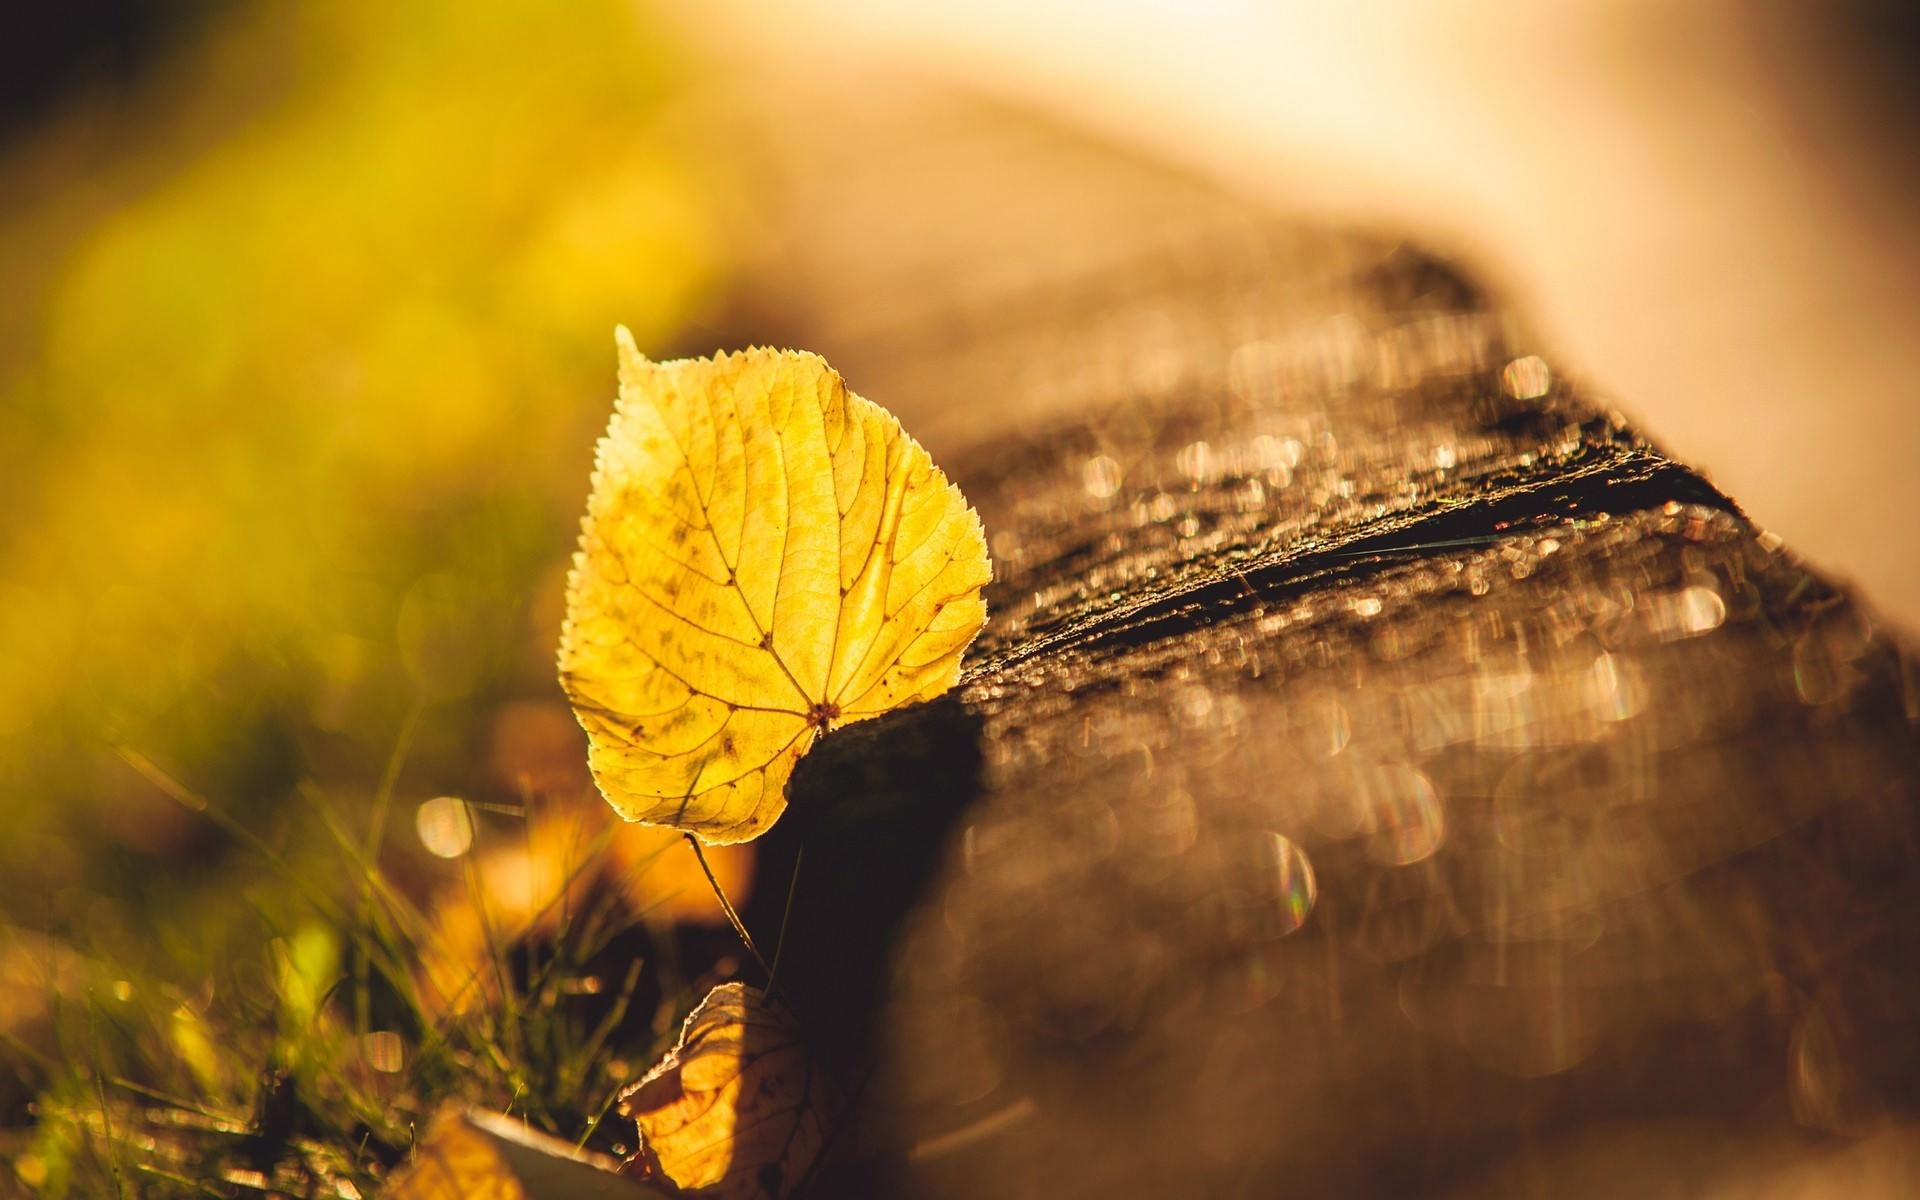 FAllen dry Leaf Background